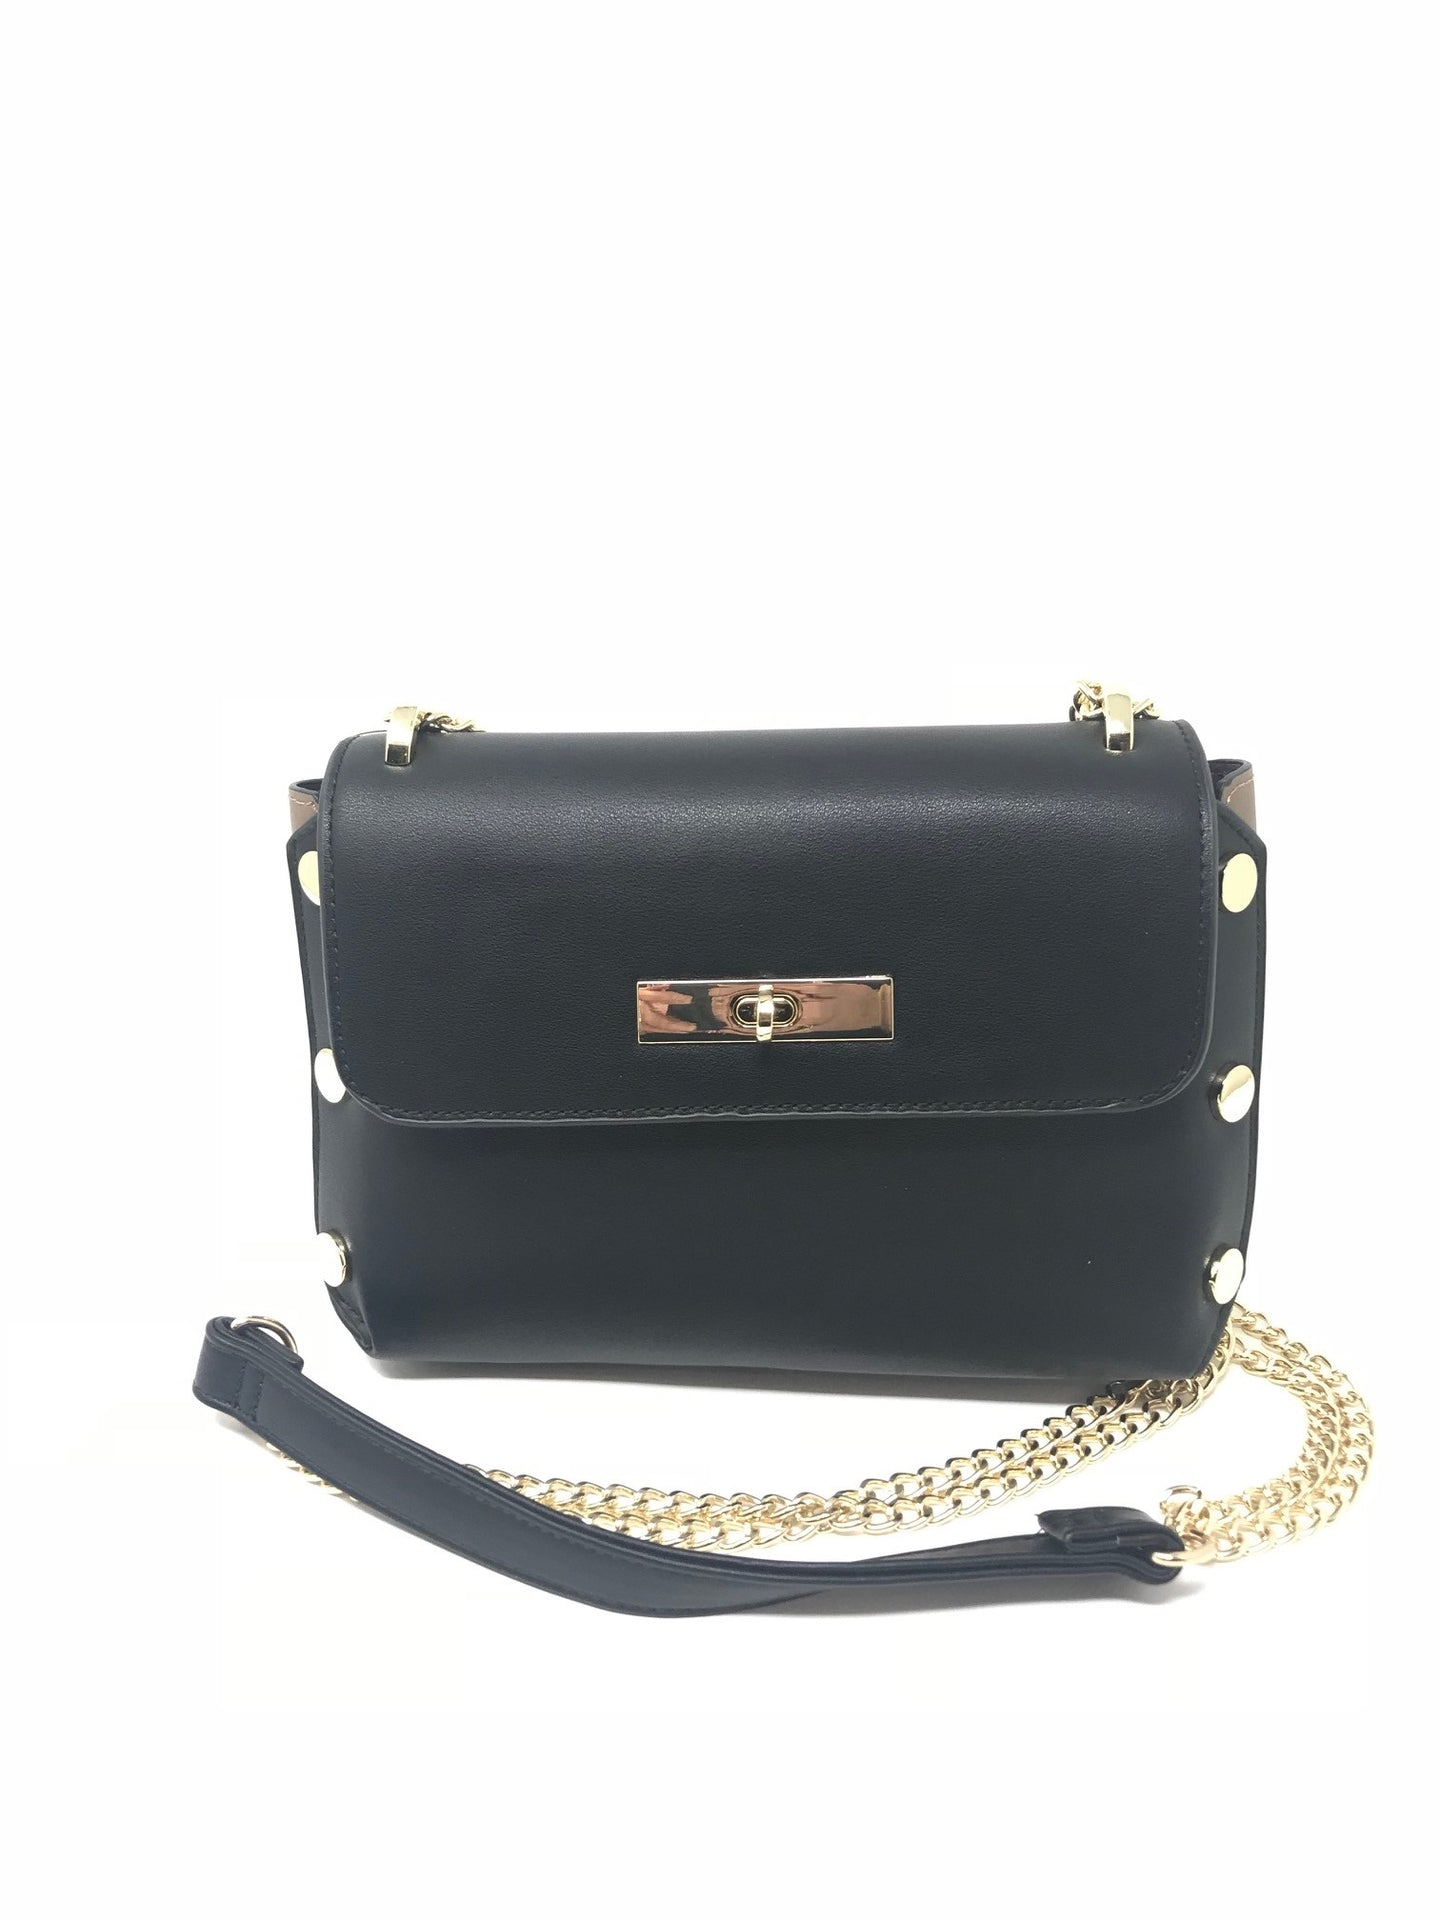 Sondra Roberts Black & Brown Crossbody with Gold Studs